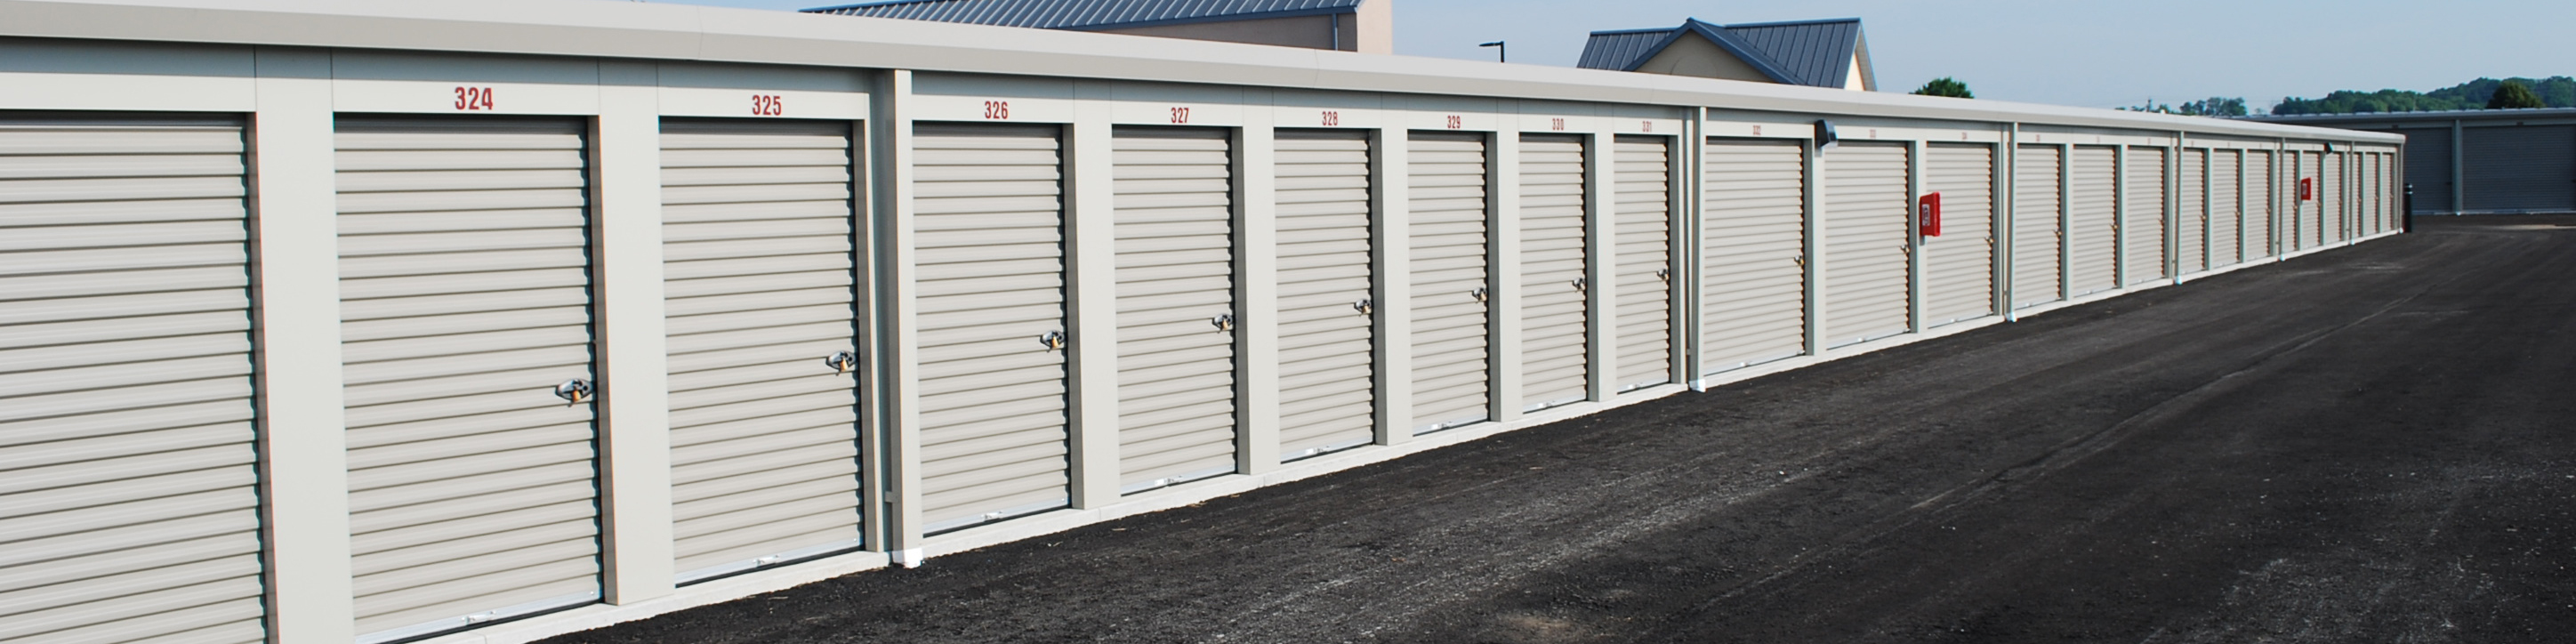 Self Storage Units Reserve Today Frontier Self Storage